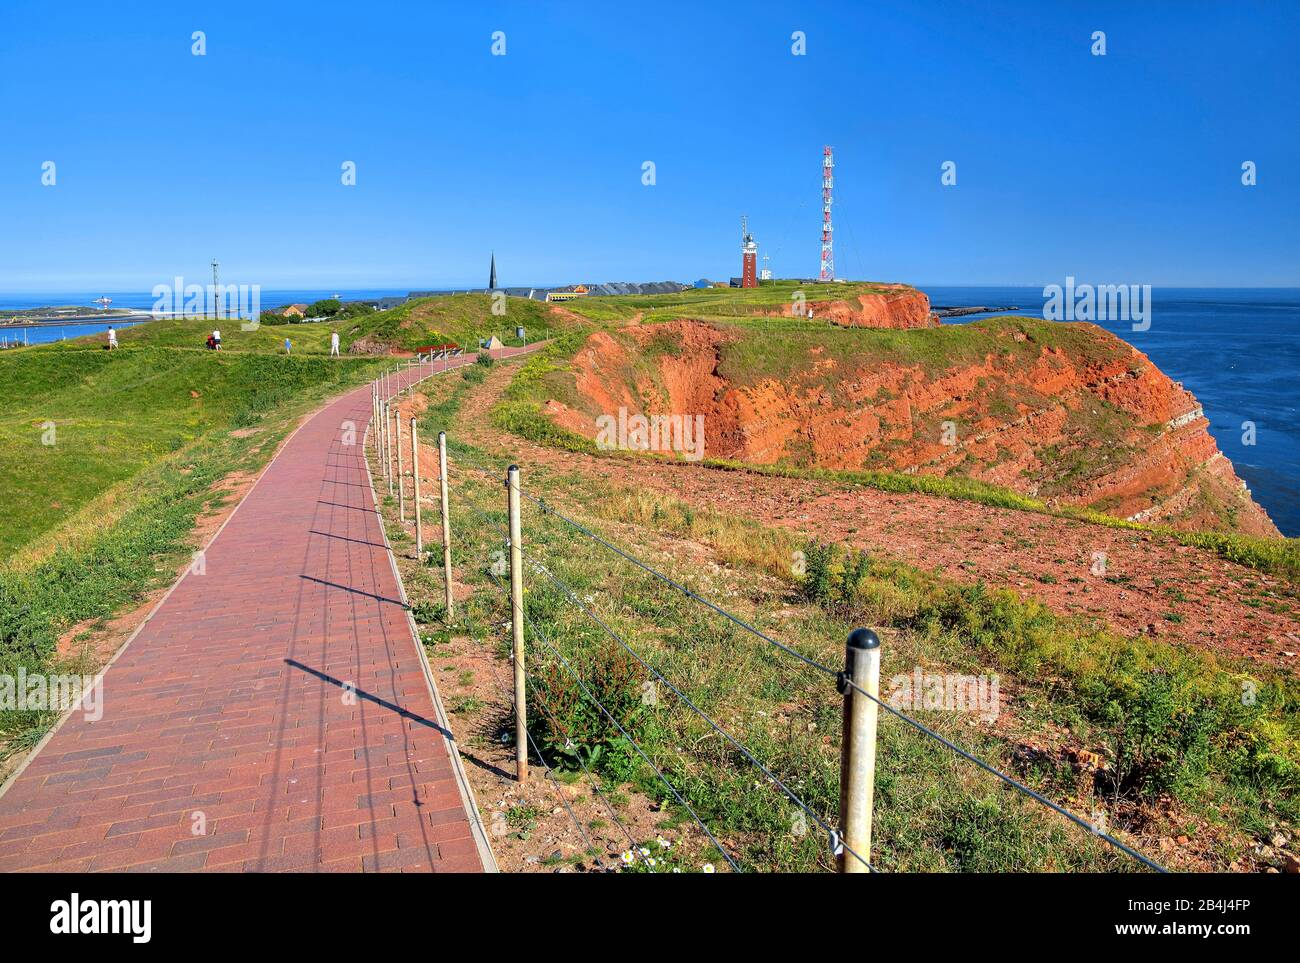 Round trip on the western cliff with lighthouse and transmission tower on the Oberland, Heligoland, Helgoland Bay, German Bay, North Sea island, North Sea, Schleswig-Holstein, Germany Stock Photo